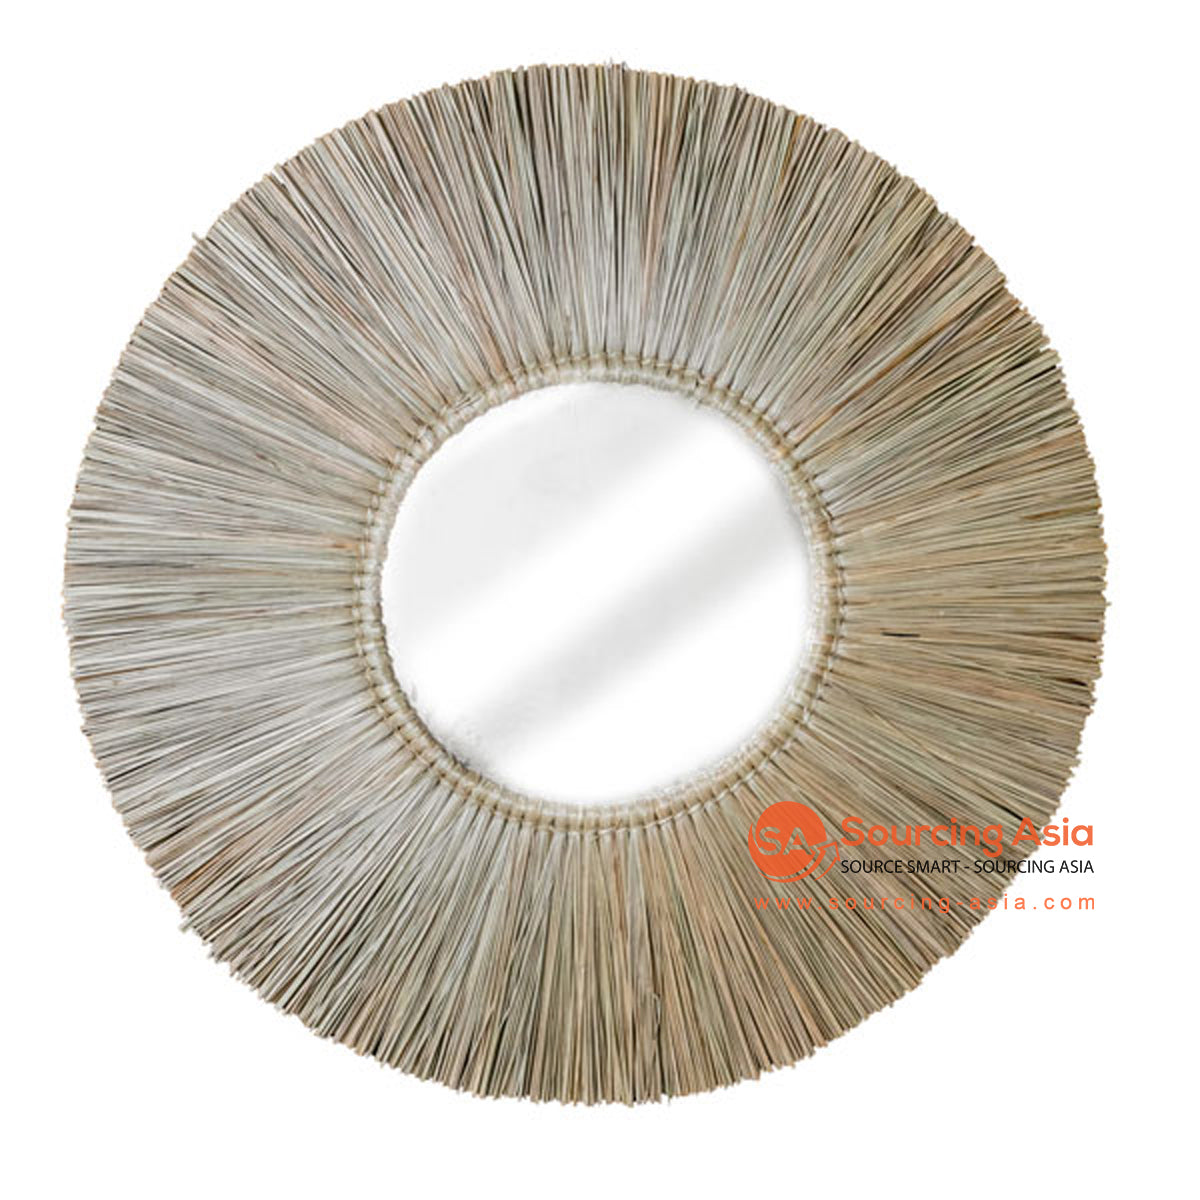 SHL172-5 NATURAL ROUND MENDONG MIRROR